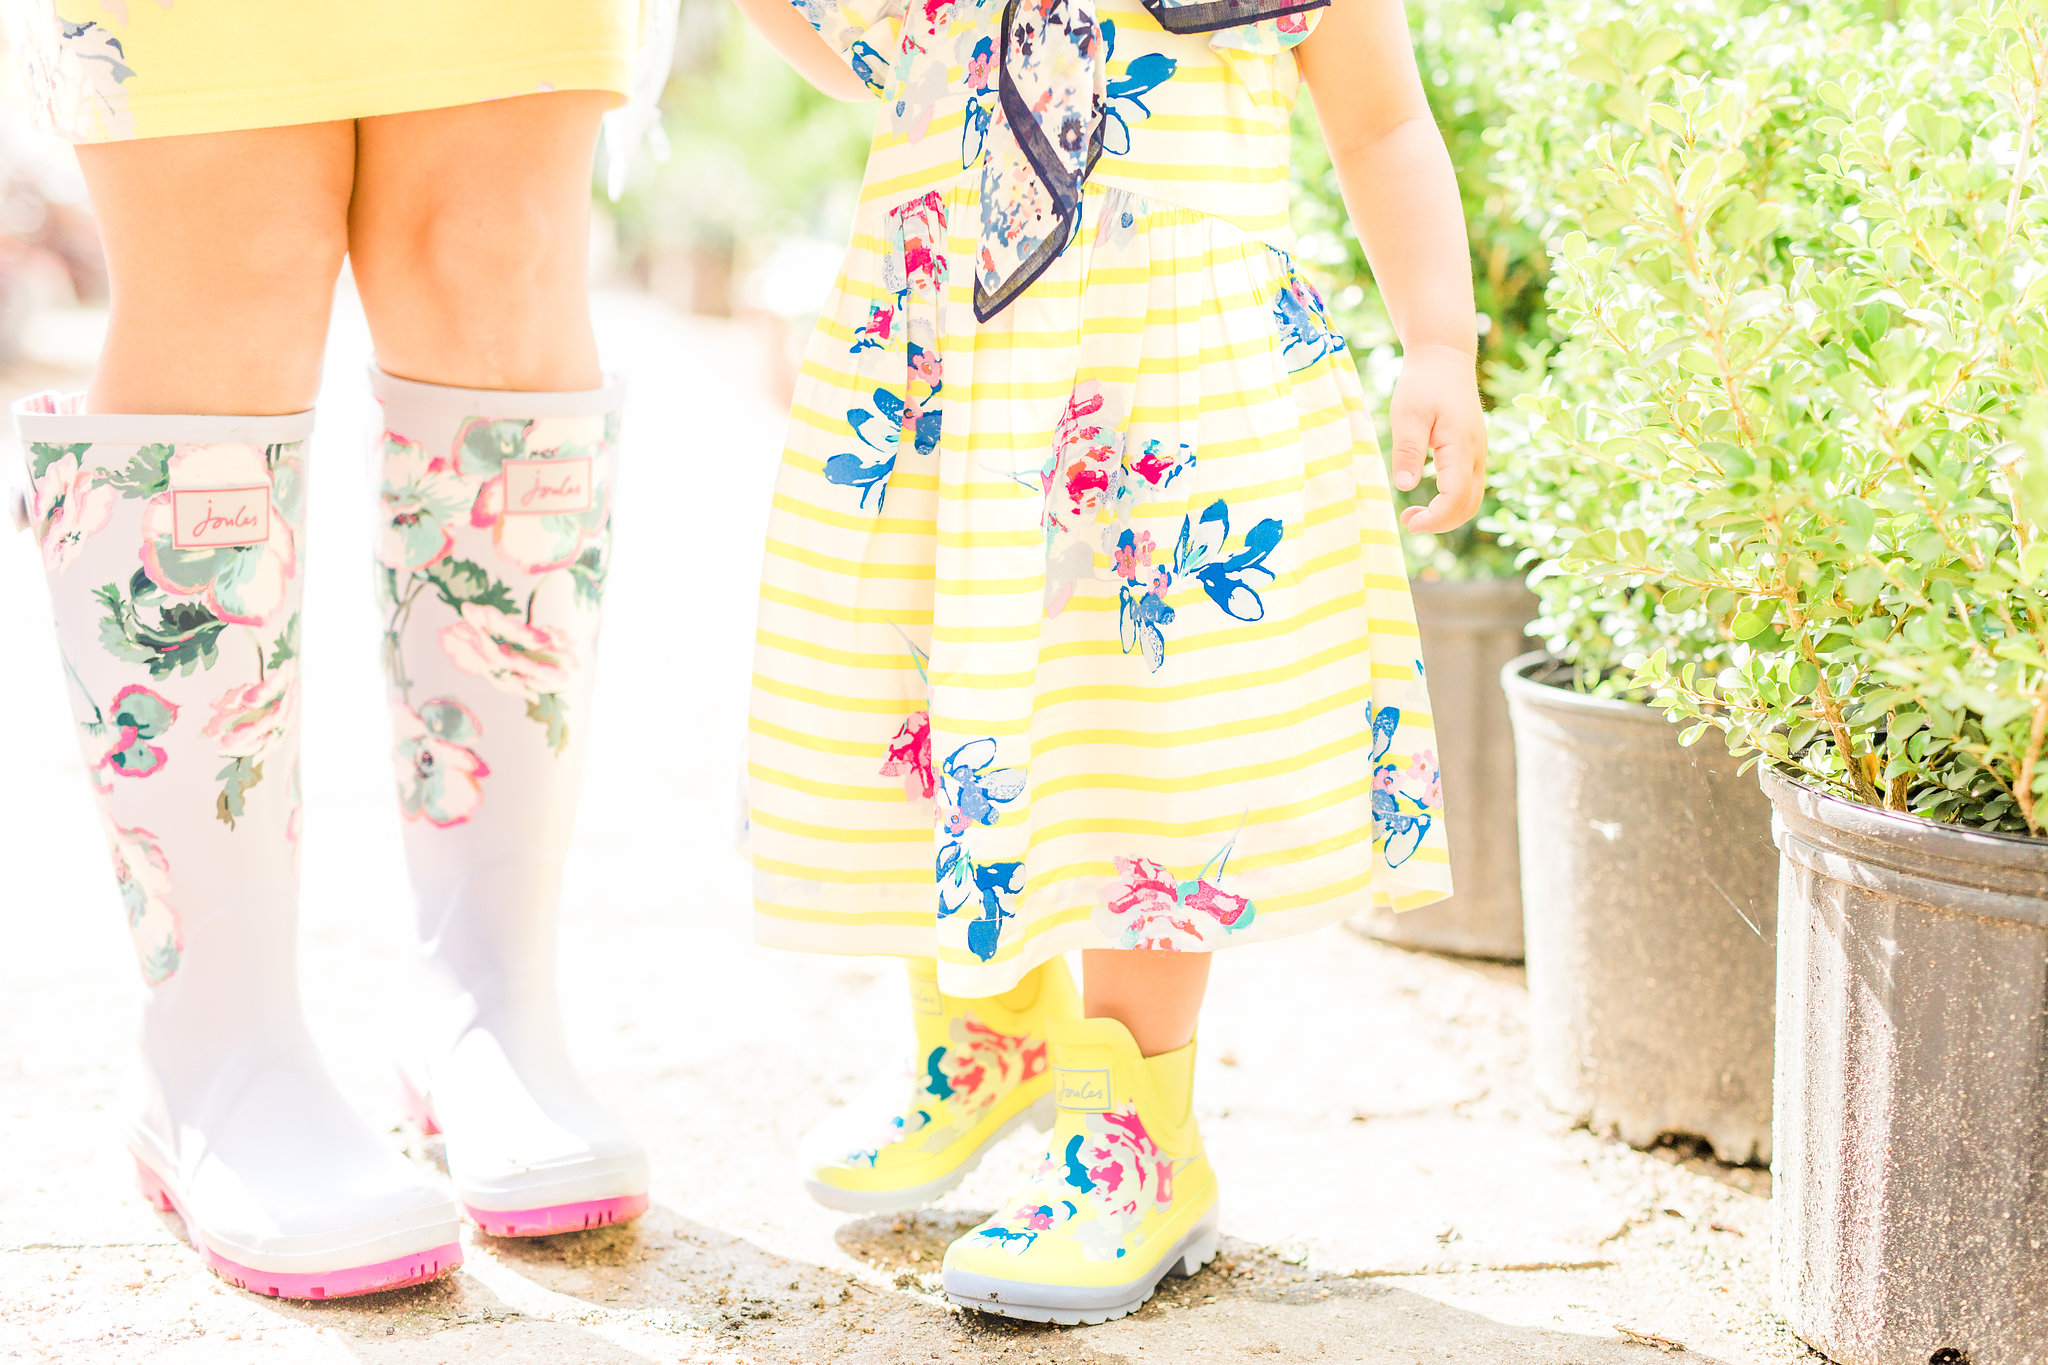 Joules Tall Wellyprint Floral Print Rain boots Tommy and me yellow pink rainboots.jpg